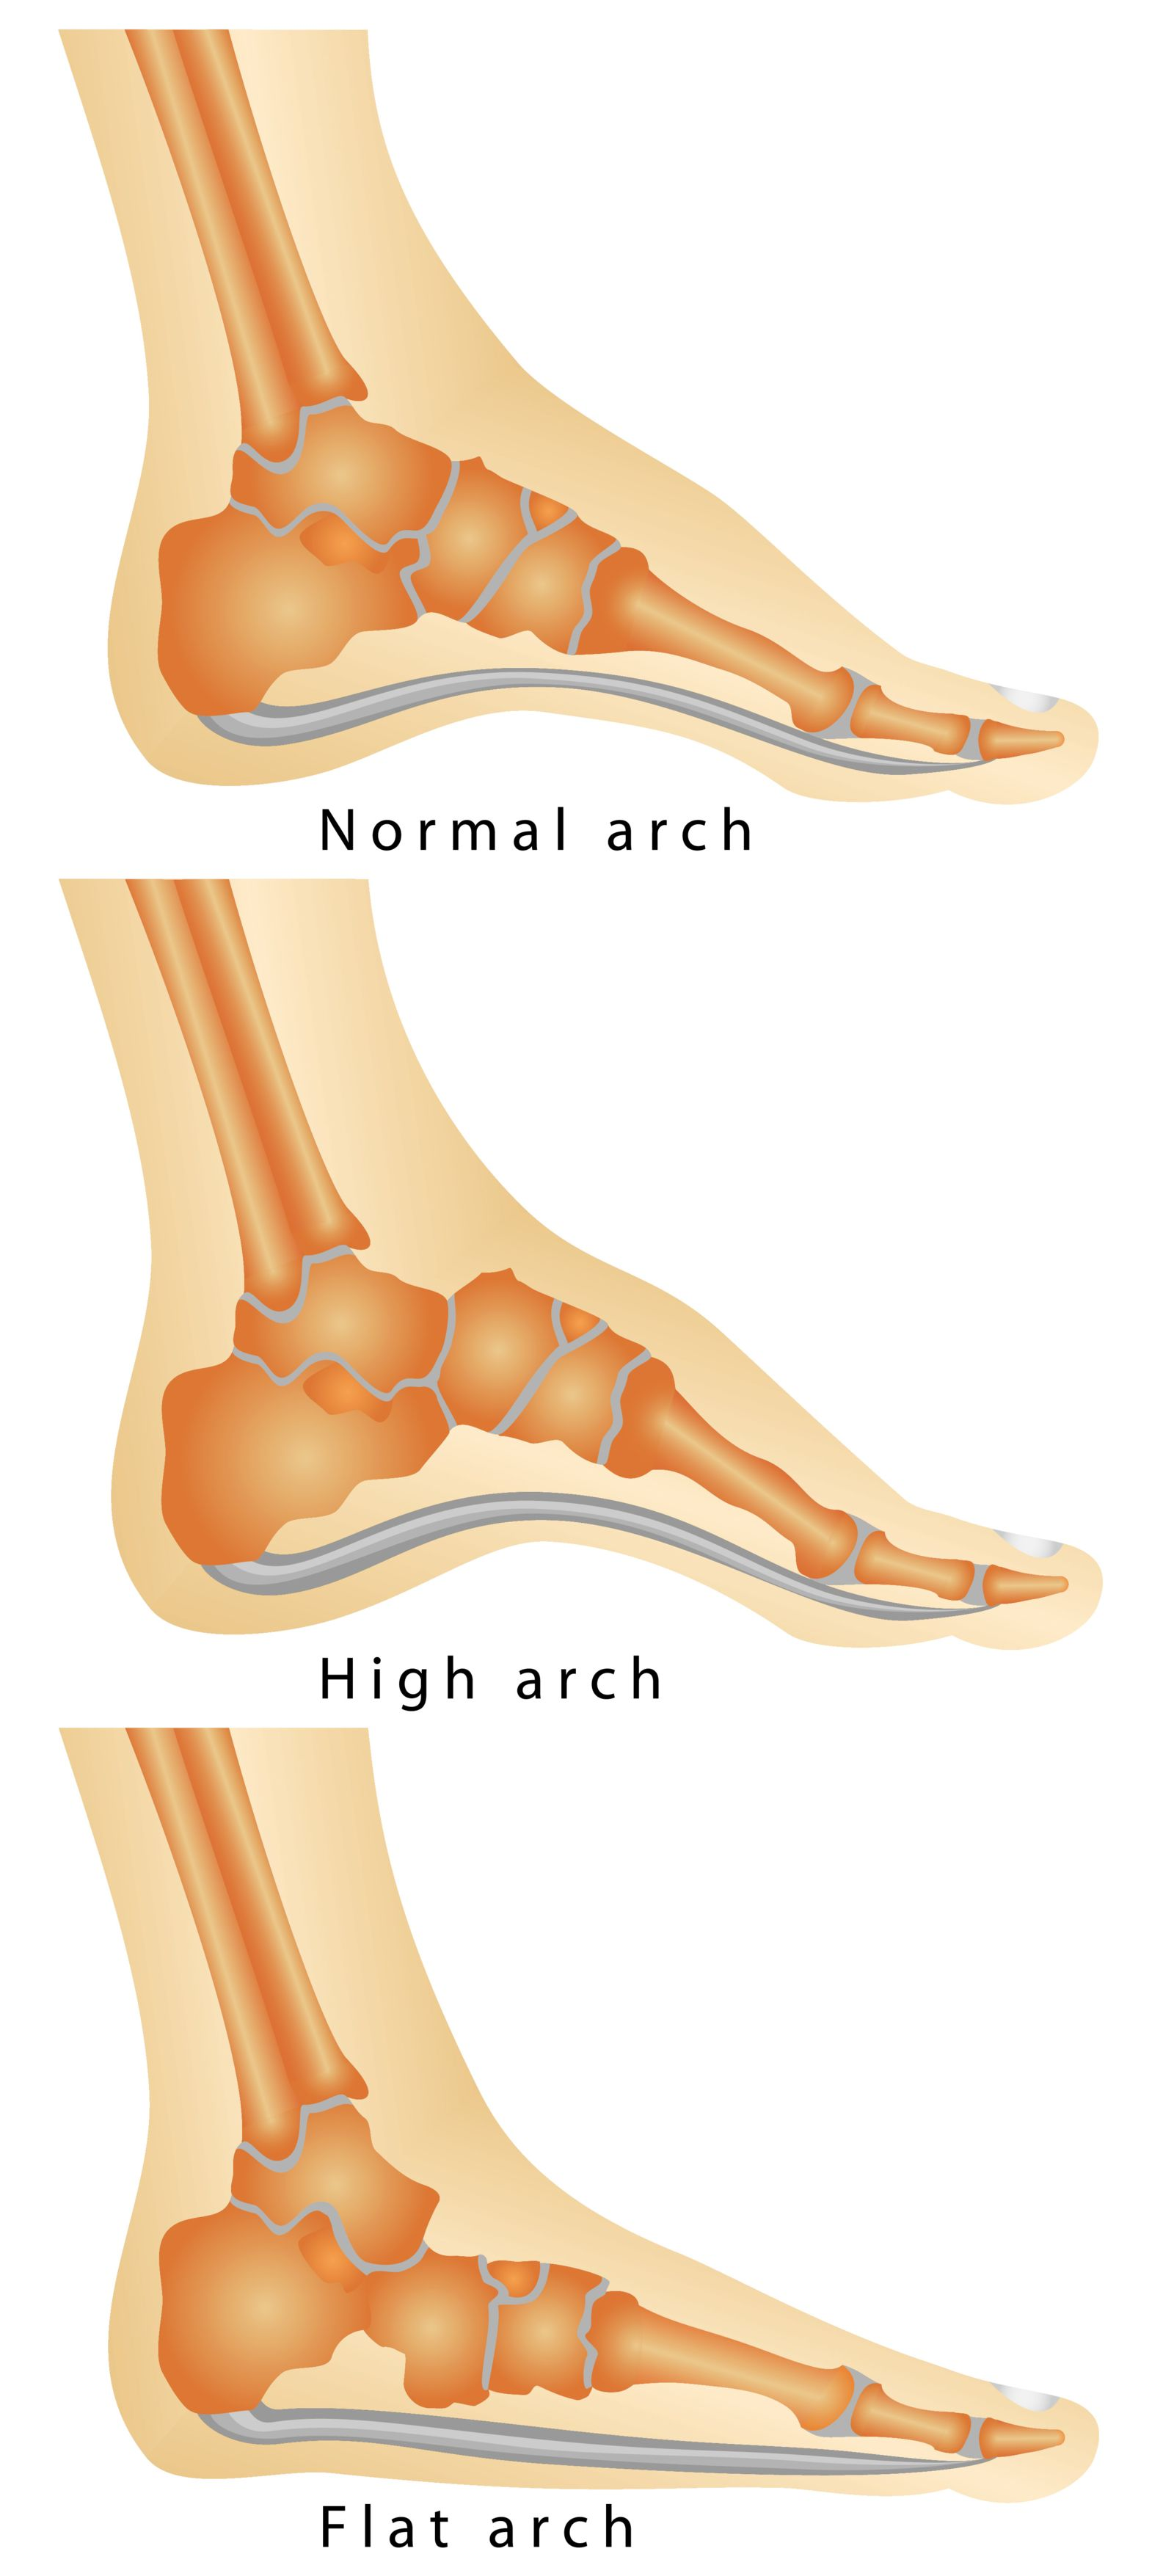 We know a lot of your foot's lower arch, but new research suggests we should also pay attention to that top arch as well!